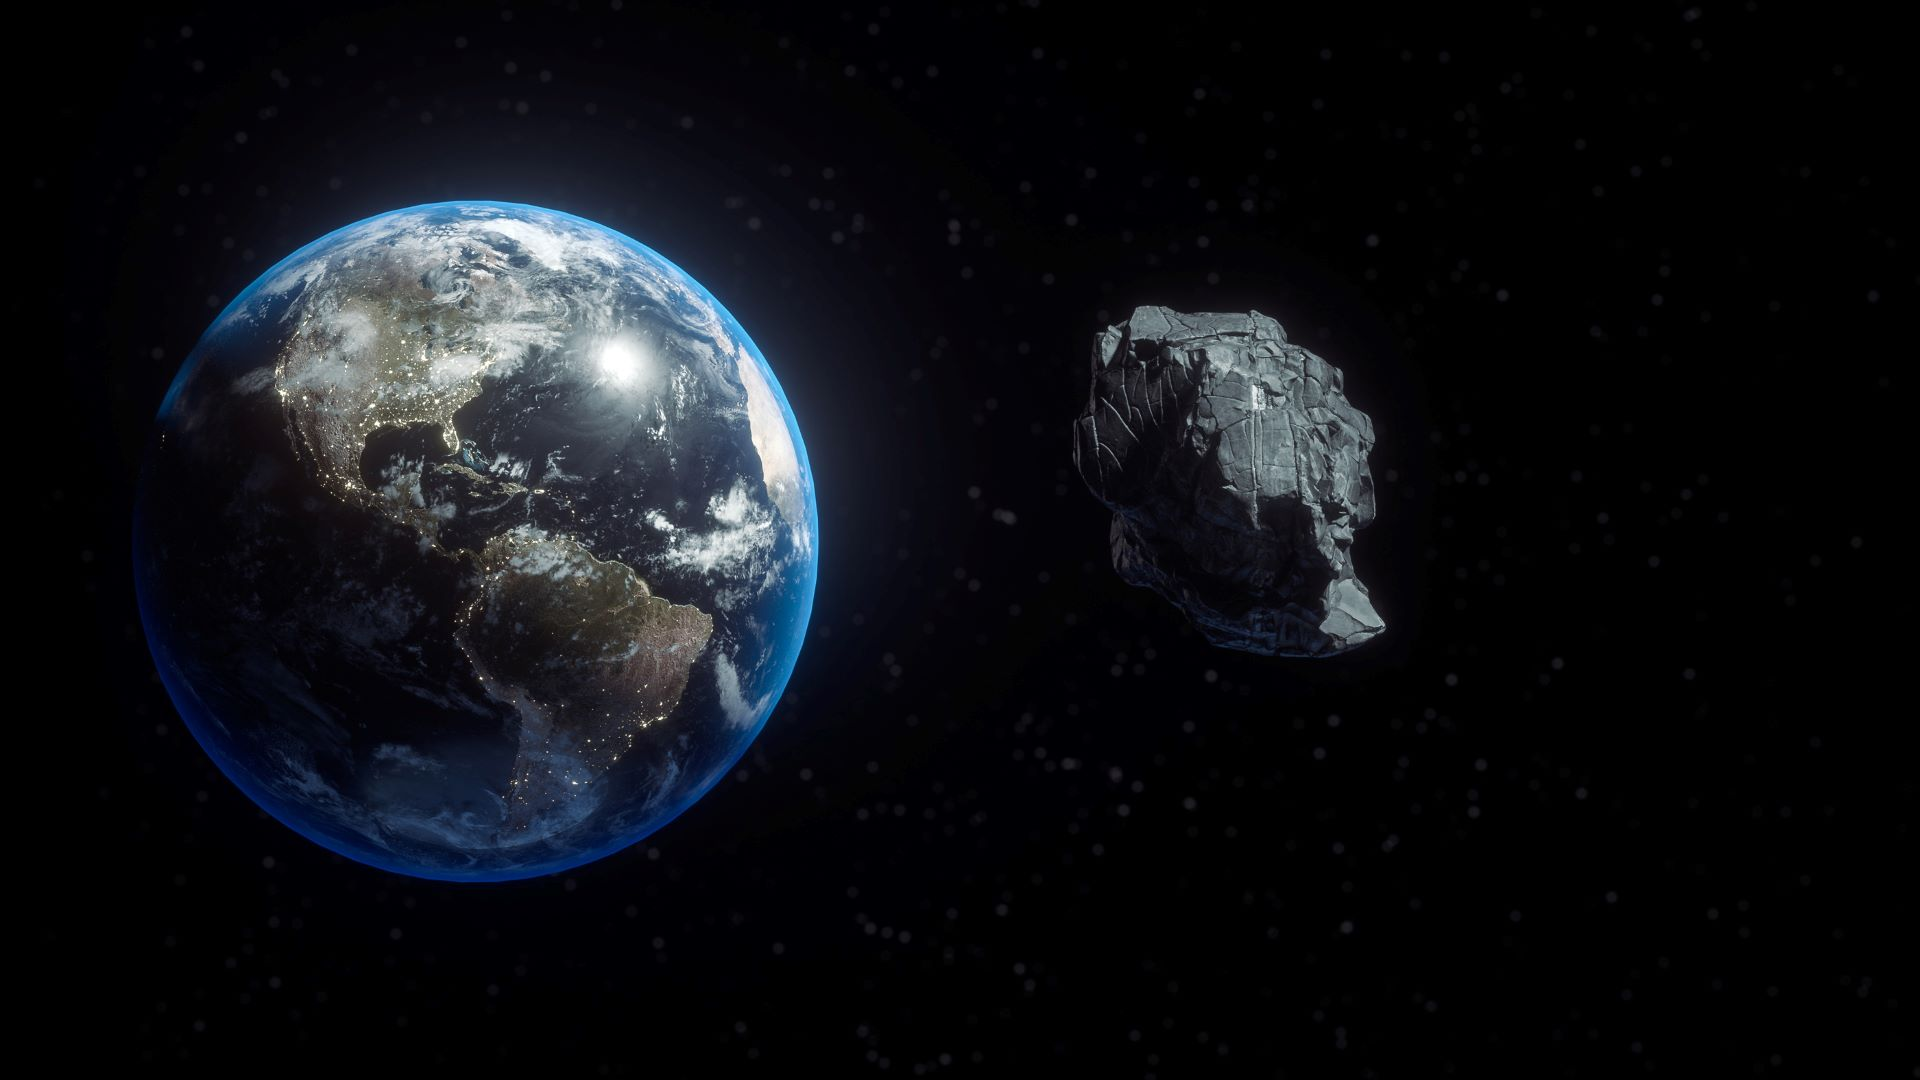 Asteroids are leftovers from the solar system's creation.